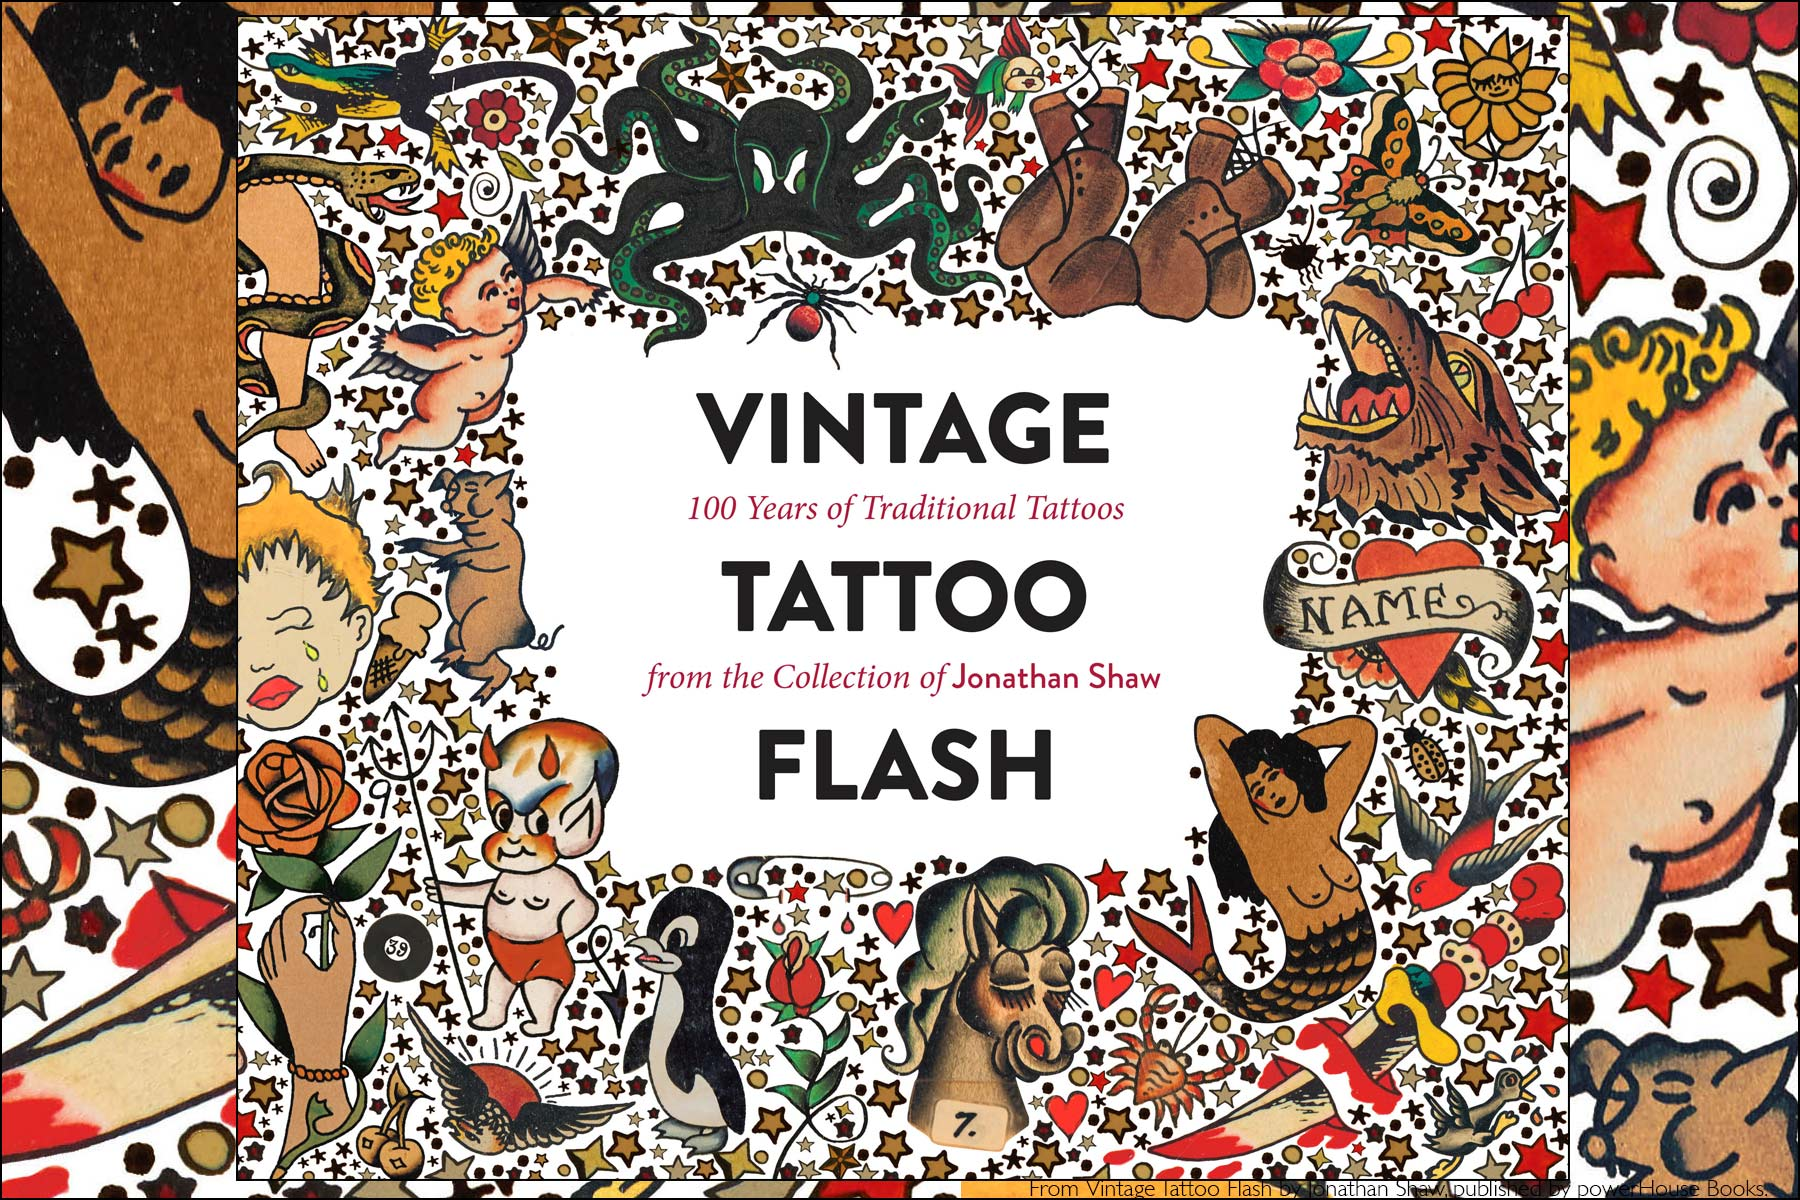 Vintage Tattoo Flash by Jonathan Shaw, published by Powerhouse Books. Ponyboy magazine.